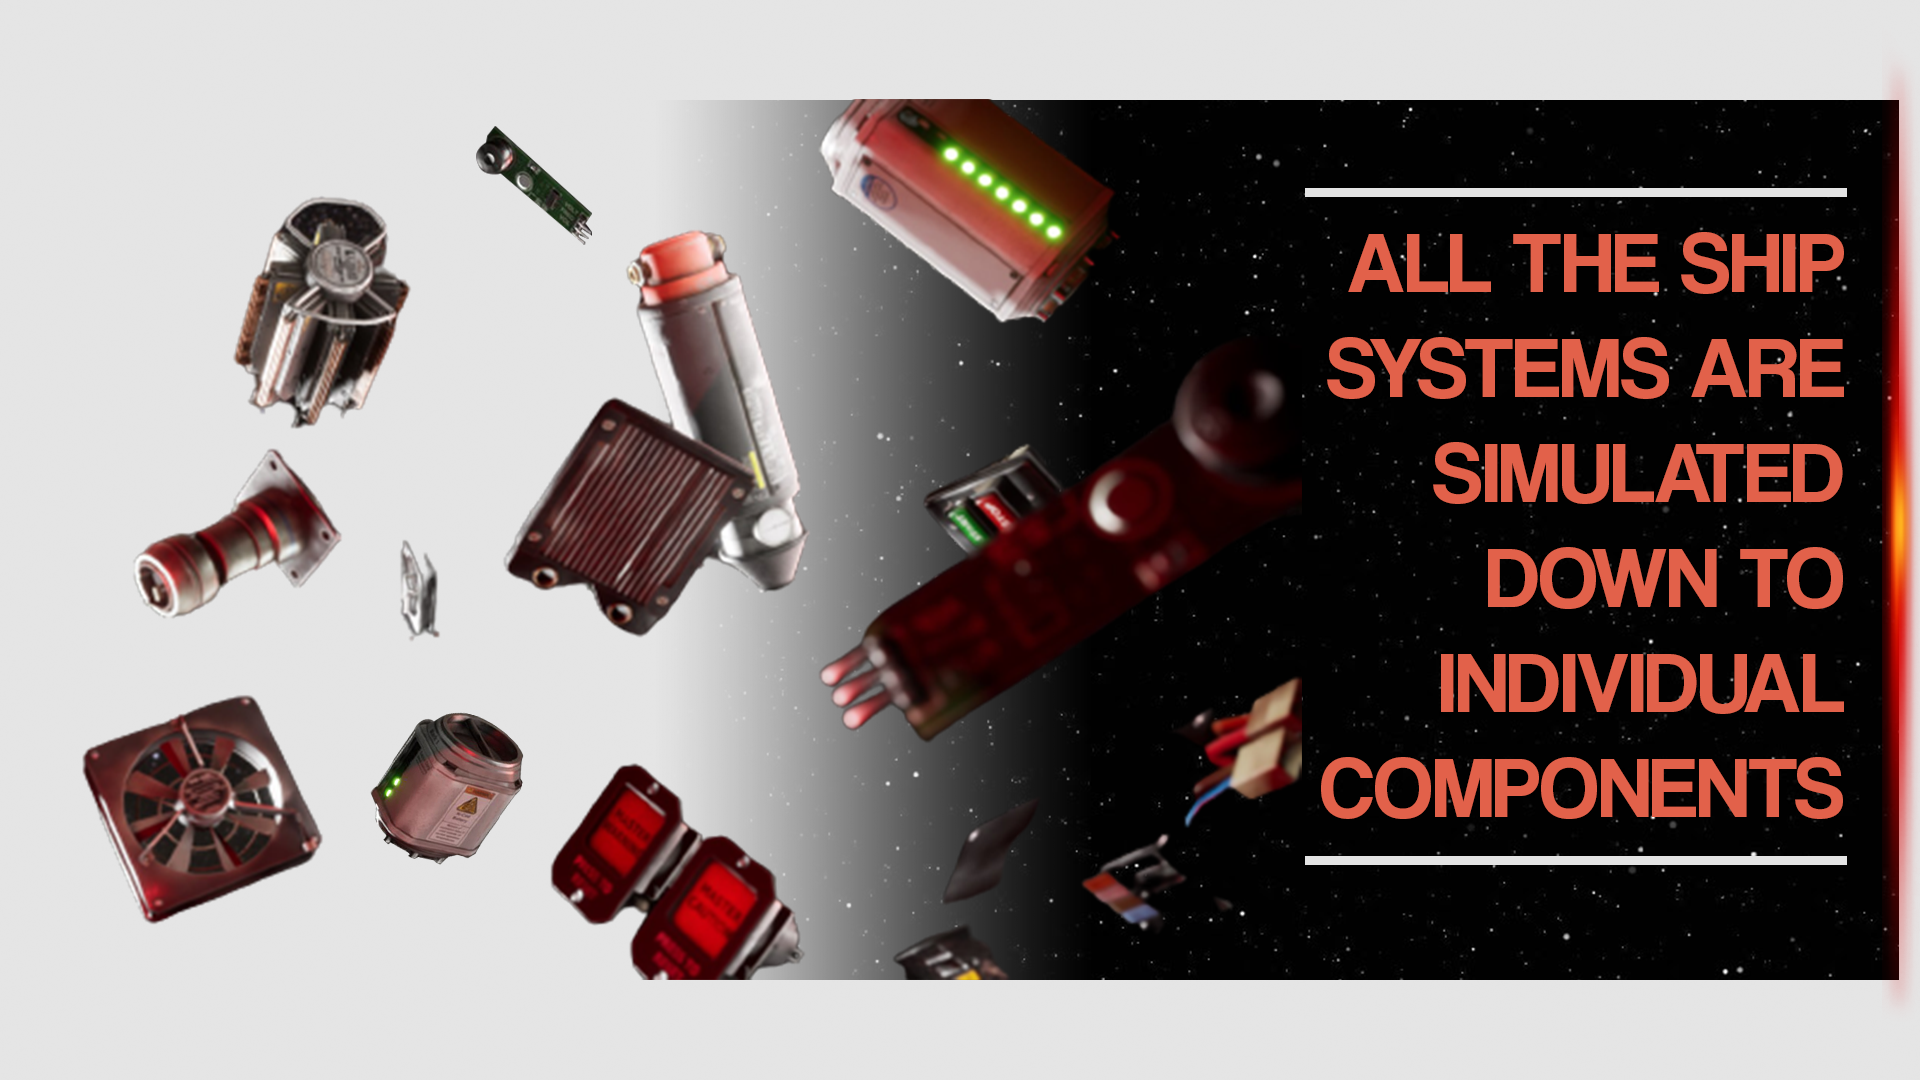 Individual Components floating in space